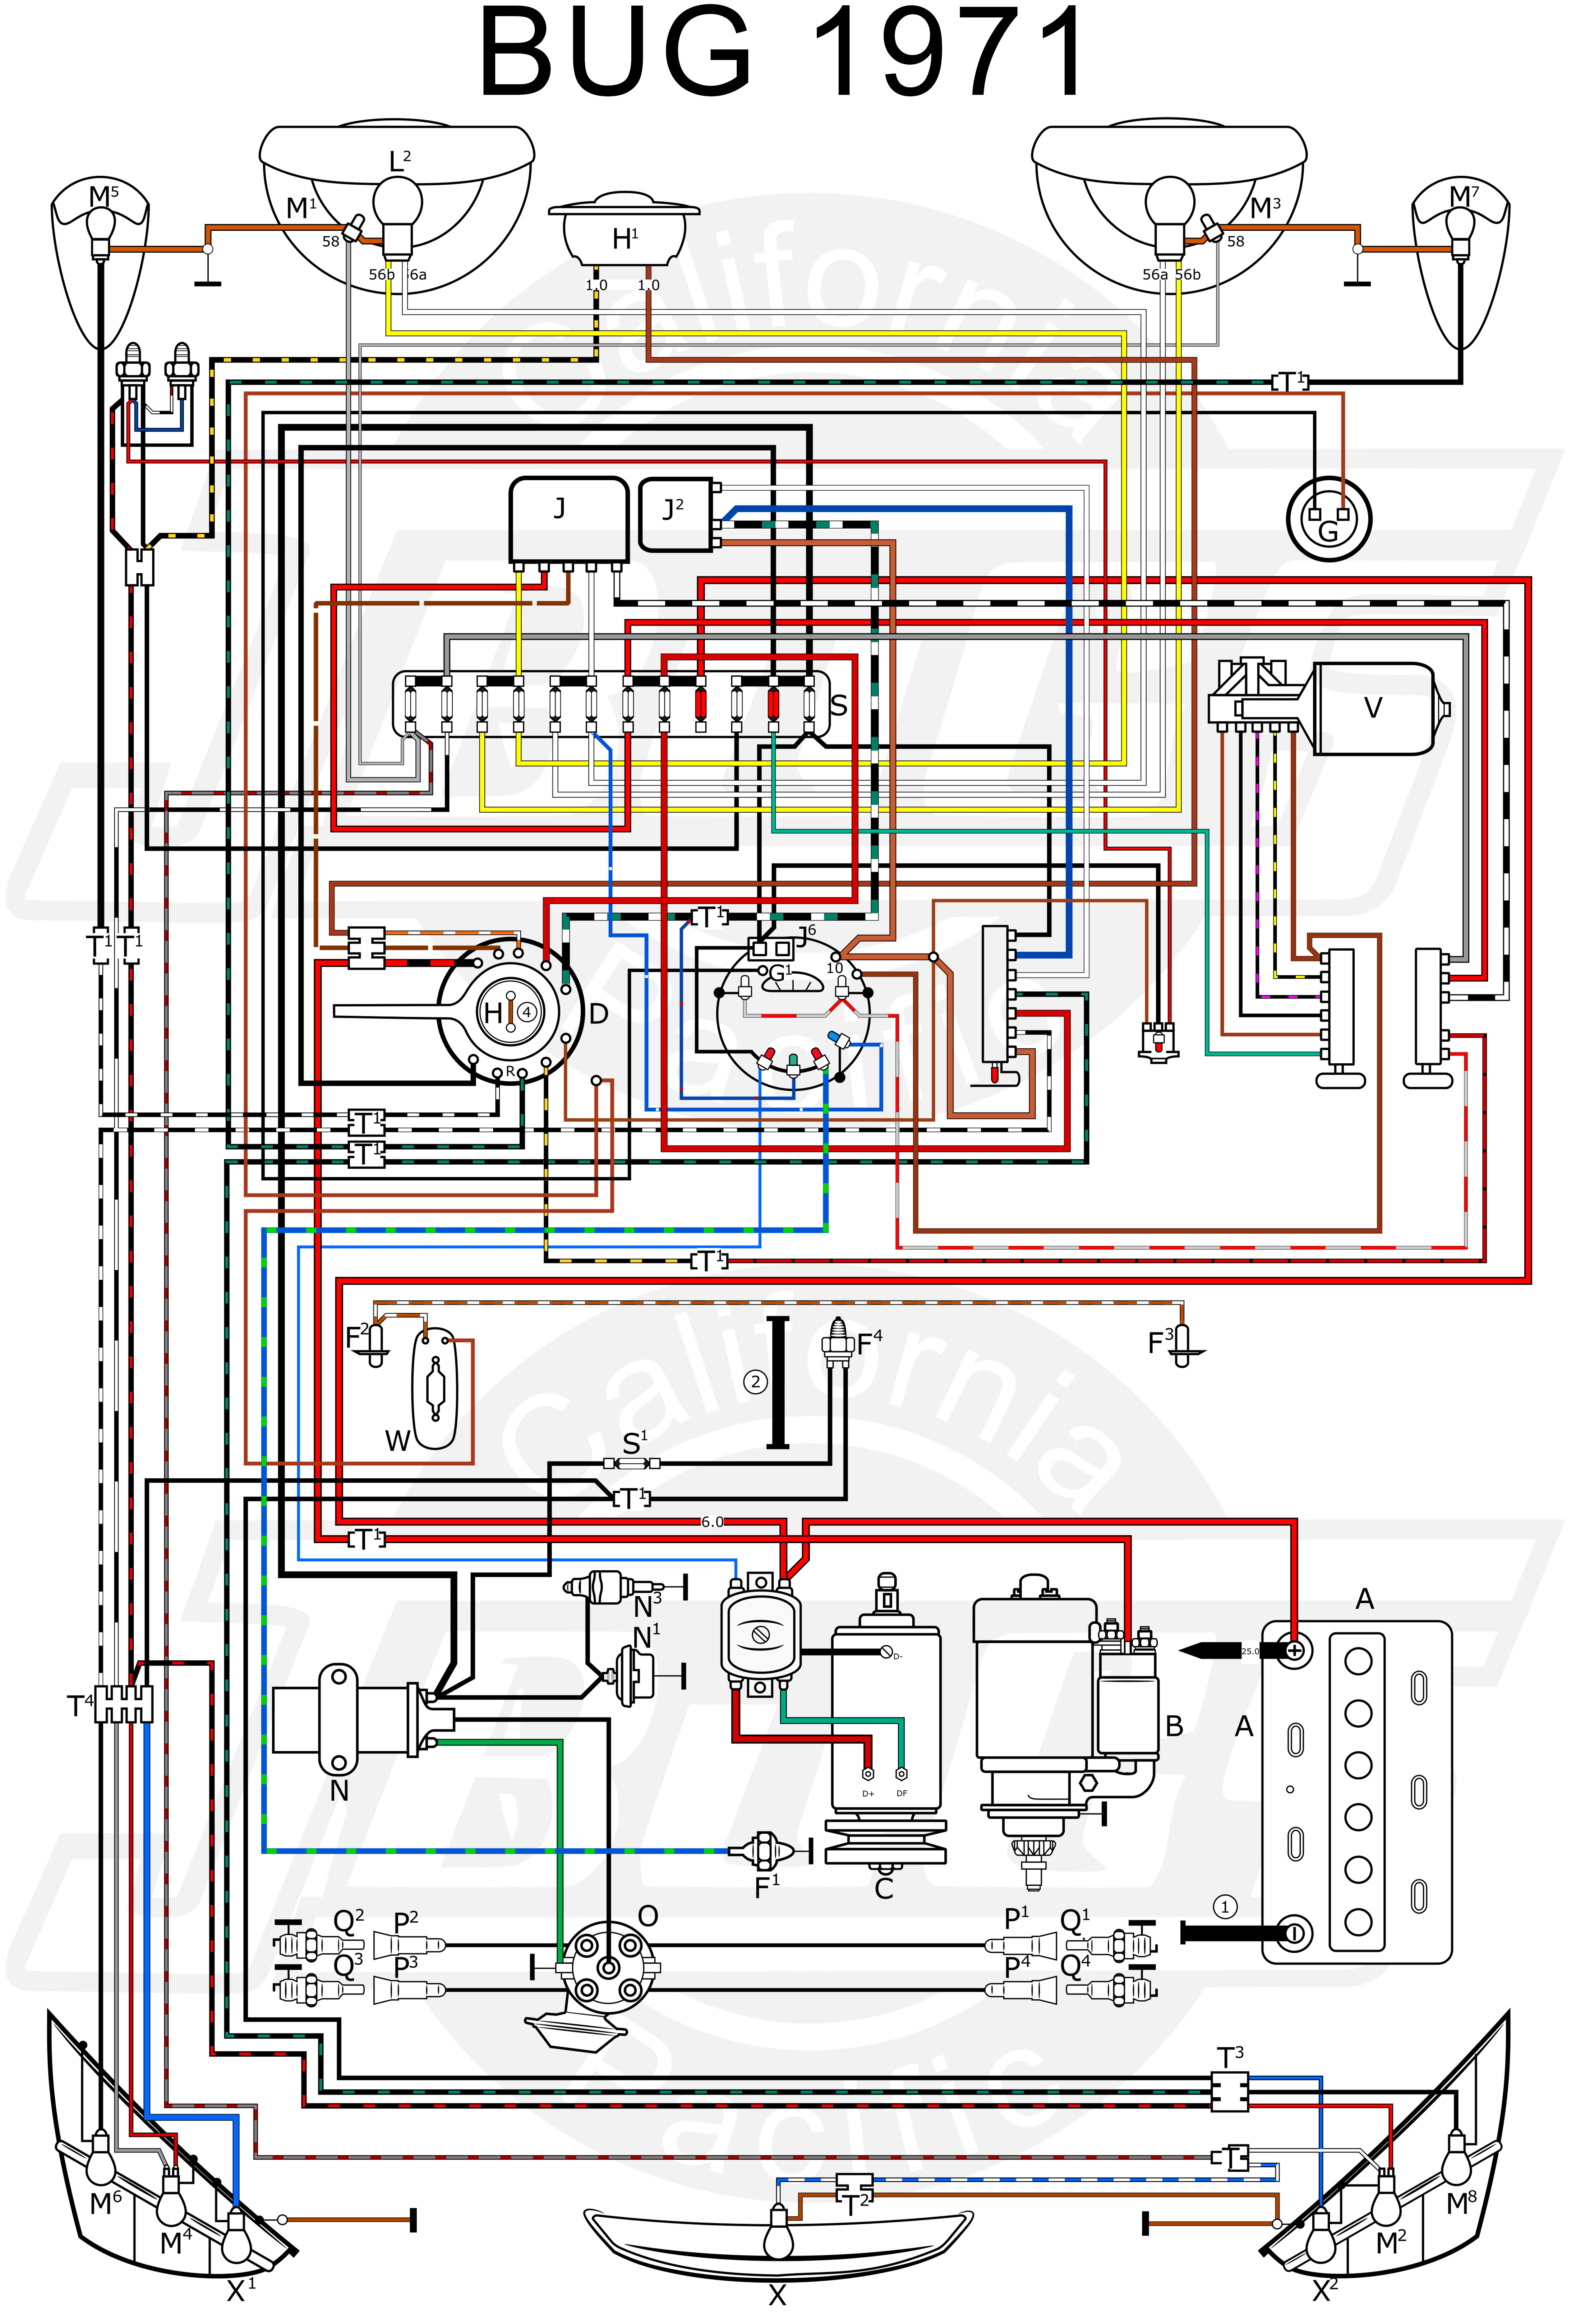 VW Bug 1971 Wiring Diagram 71 vw beetle wiring diagram 71 wiring diagrams instruction 1968 vw type 3 wiring diagram at gsmx.co